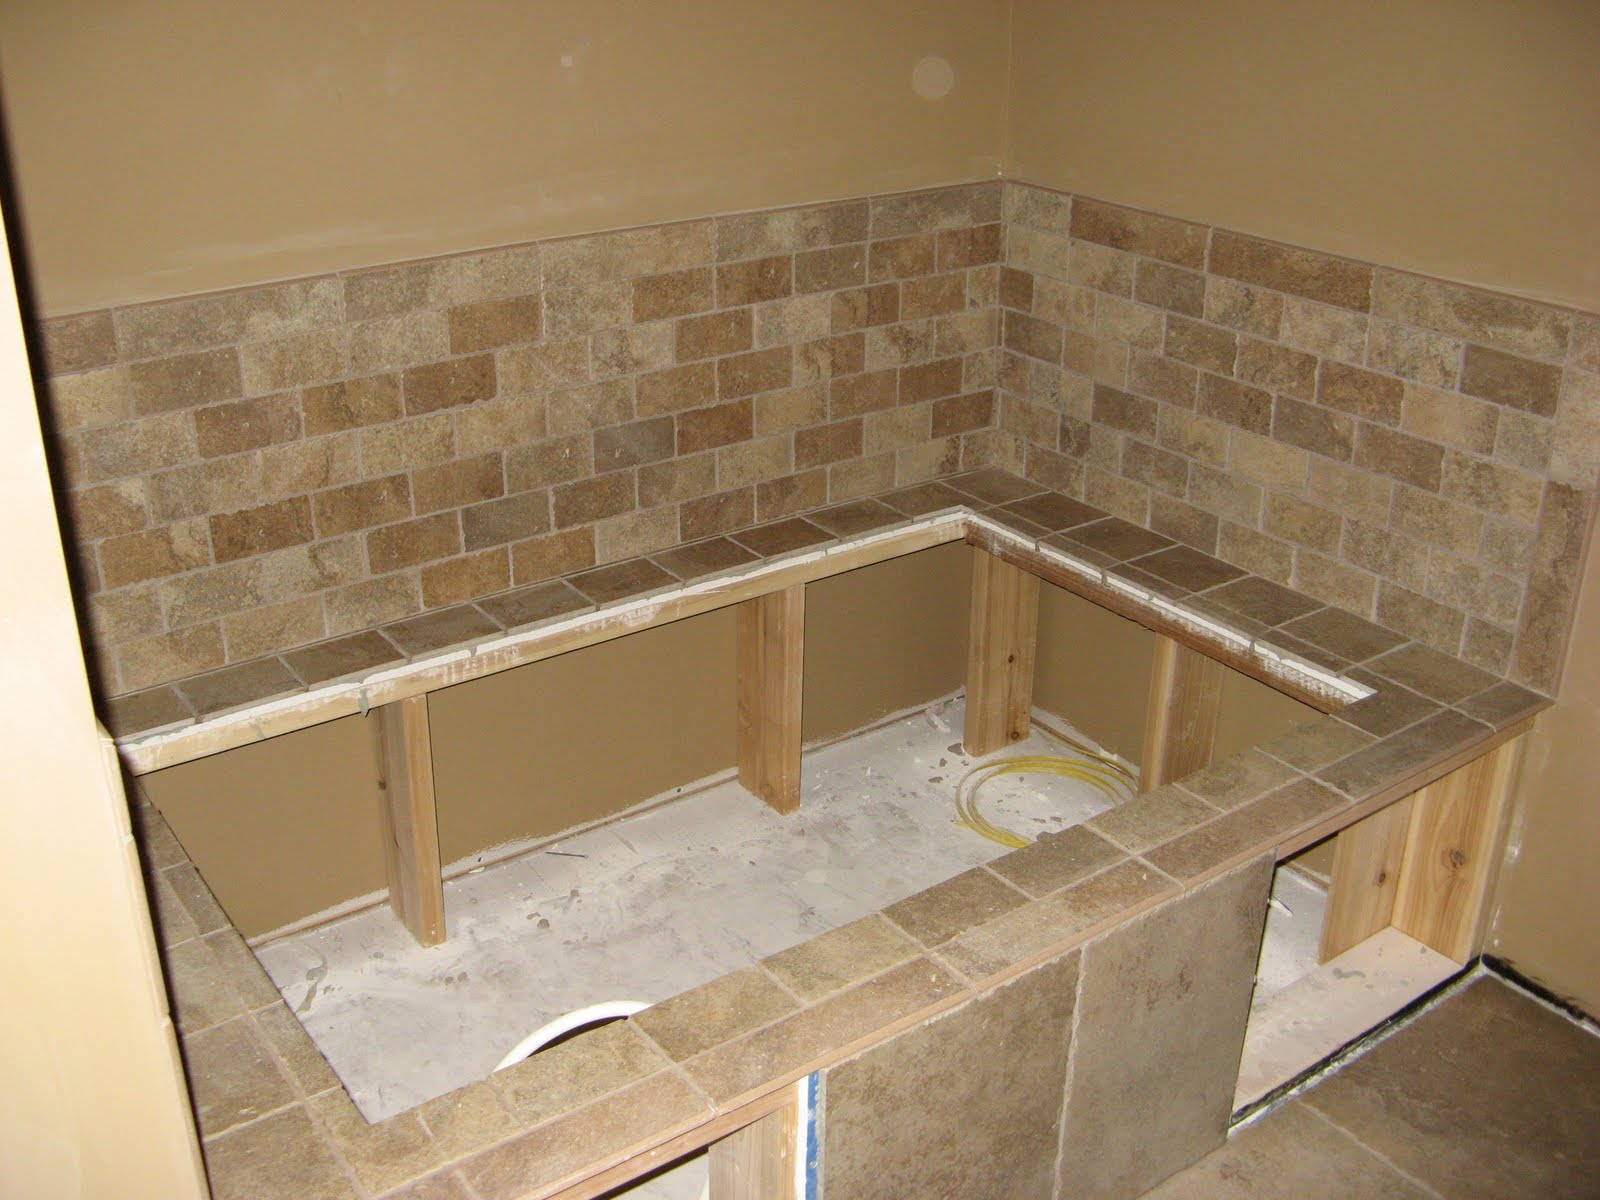 Tiling around bathtub - Installing tile around bathtub ...